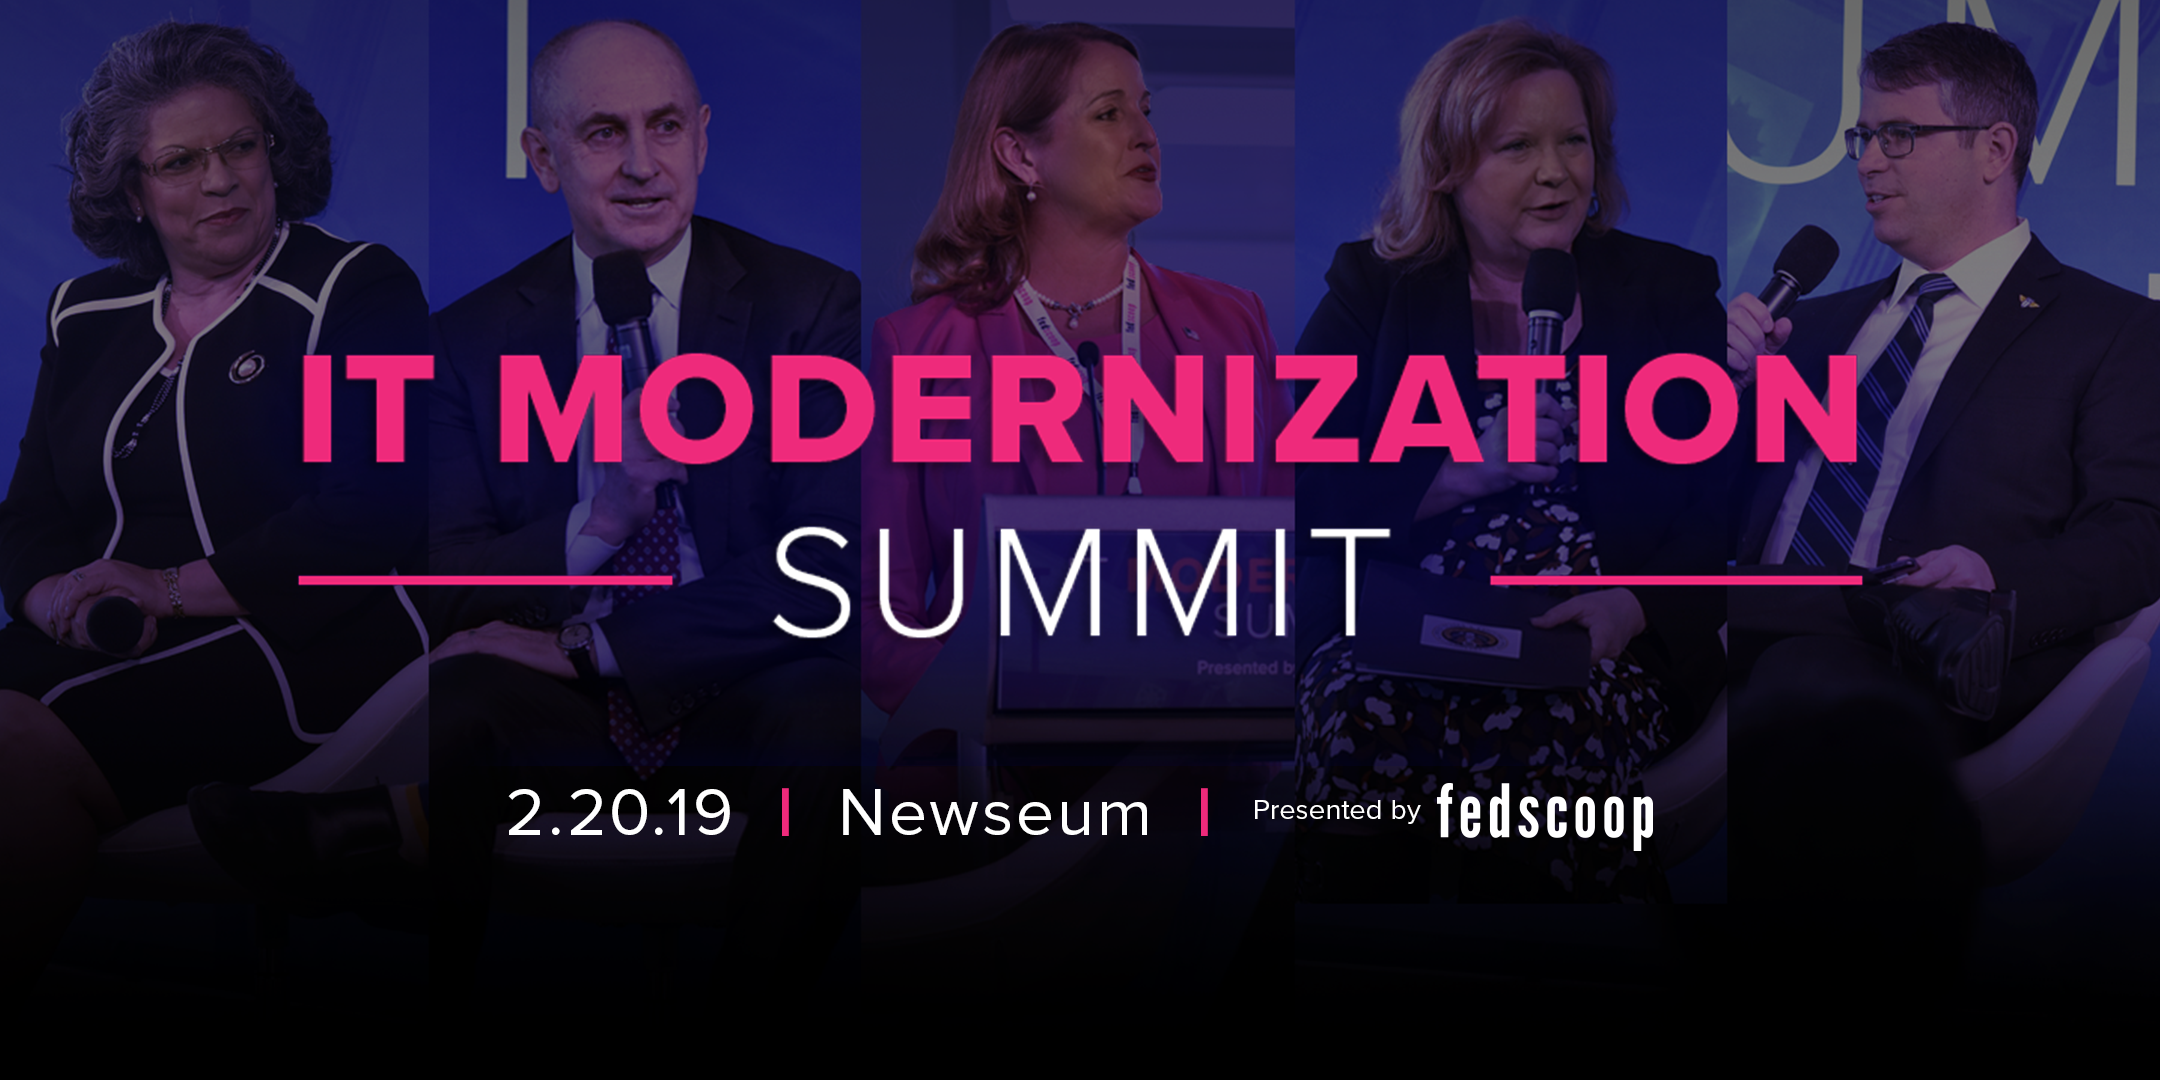 IT Modernization Summit